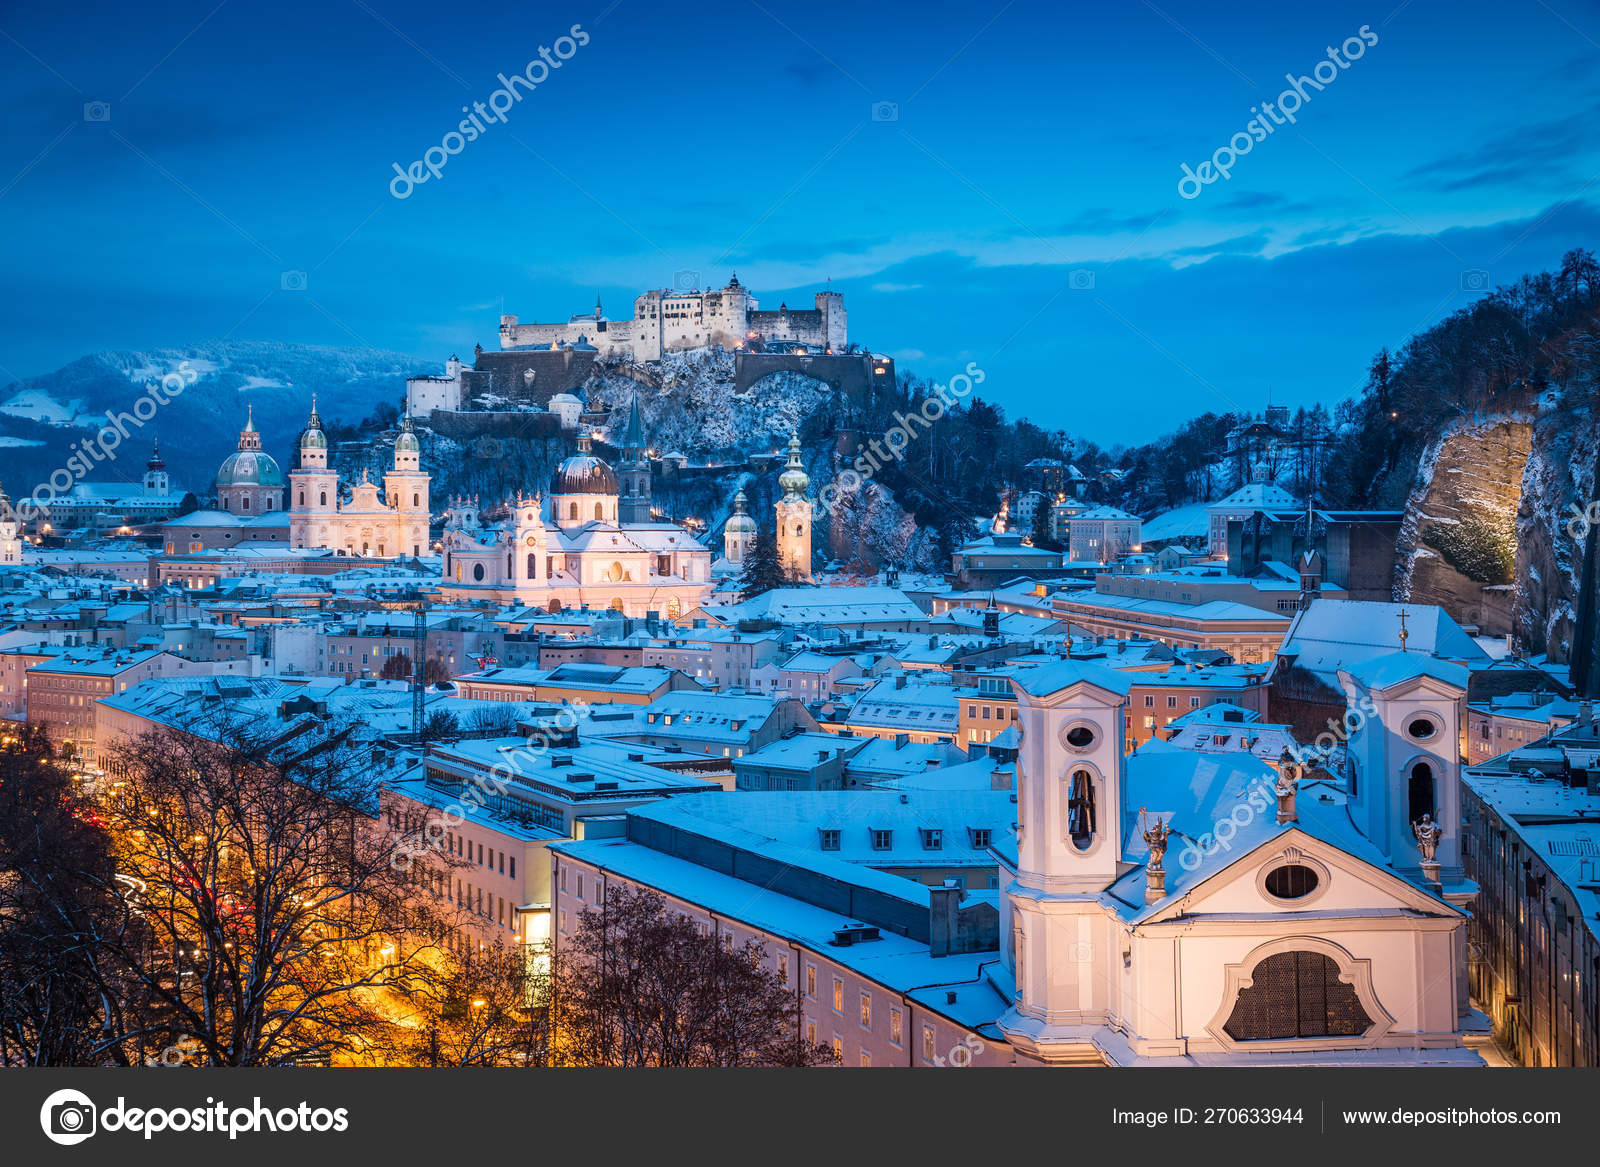 Salzburg Christmas Time.Salzburg Old Town At Christmas Time In Winter Austria